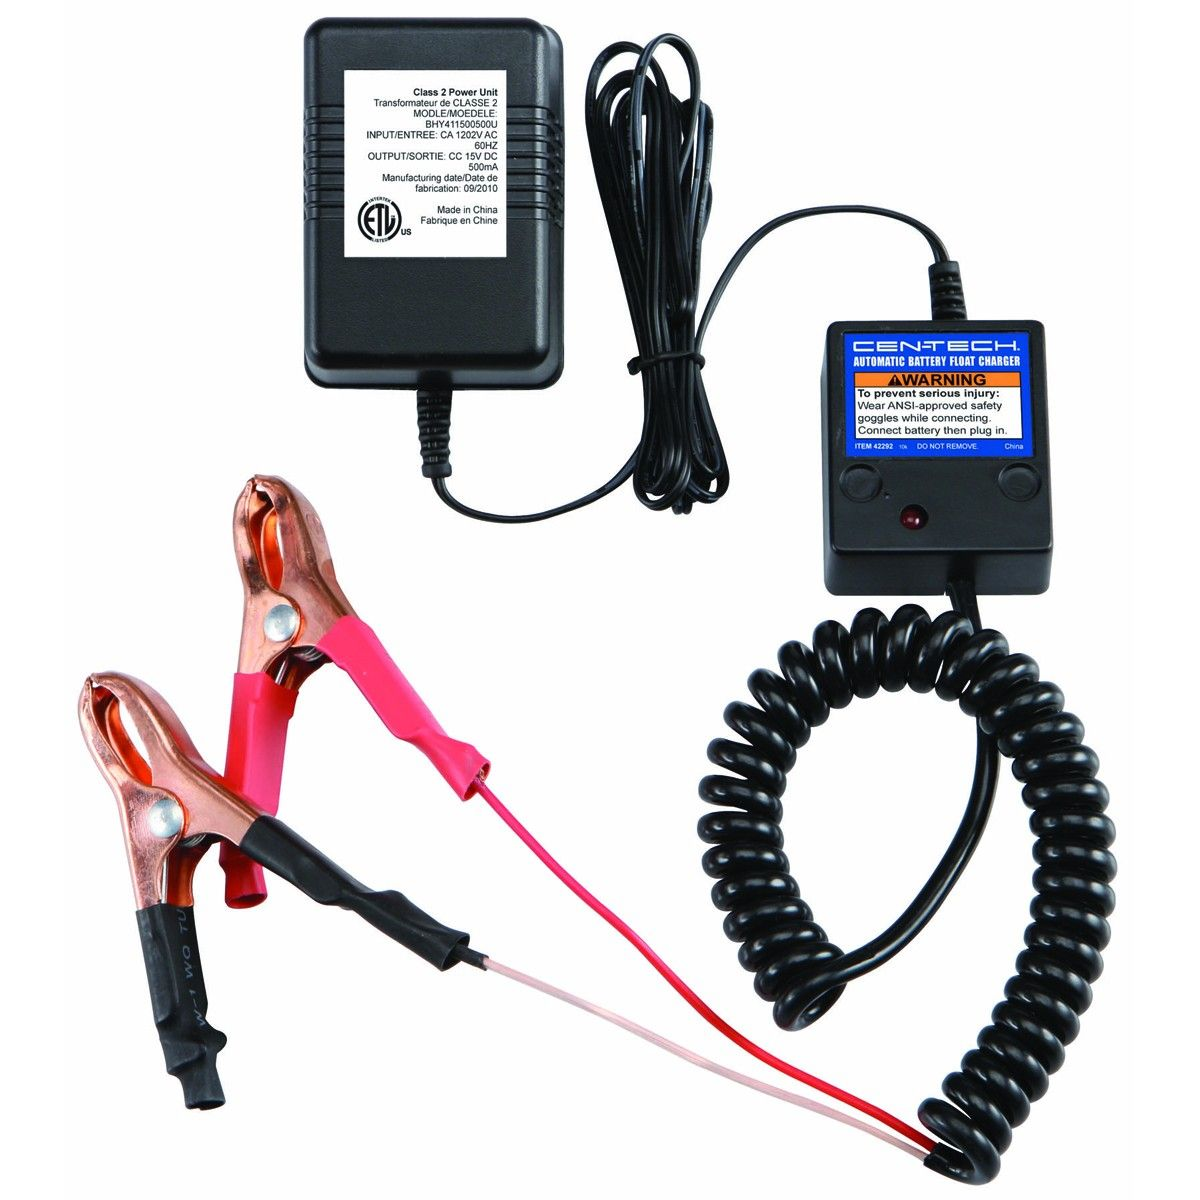 Thinking About How To Make An Effective 12v Automatic Battery Charger Circuit With 4 Le Battery Charger Circuit Solar Battery Charger Automatic Battery Charger